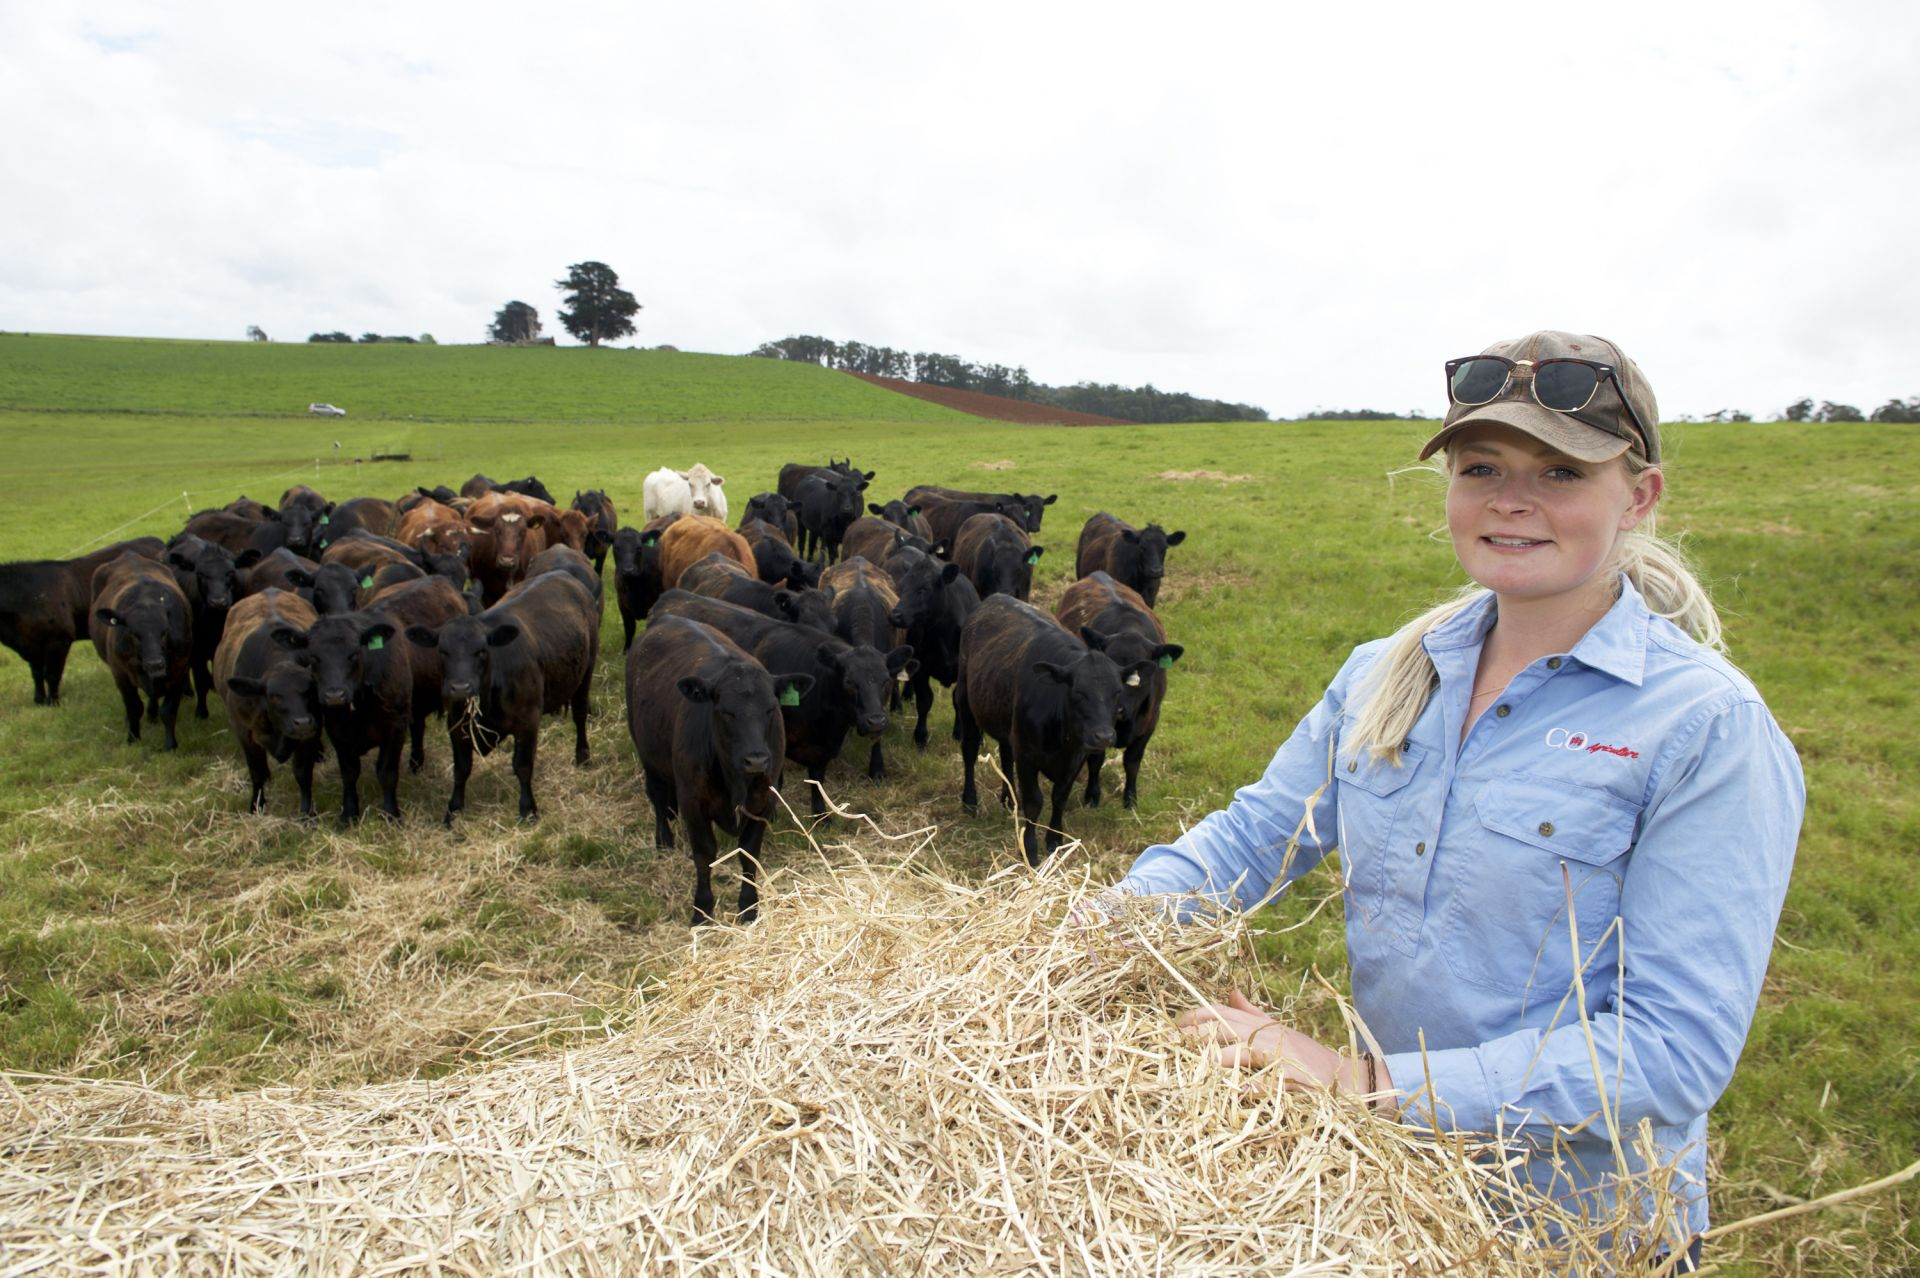 Apprentice posing with a hay bale in front of a herd of cows